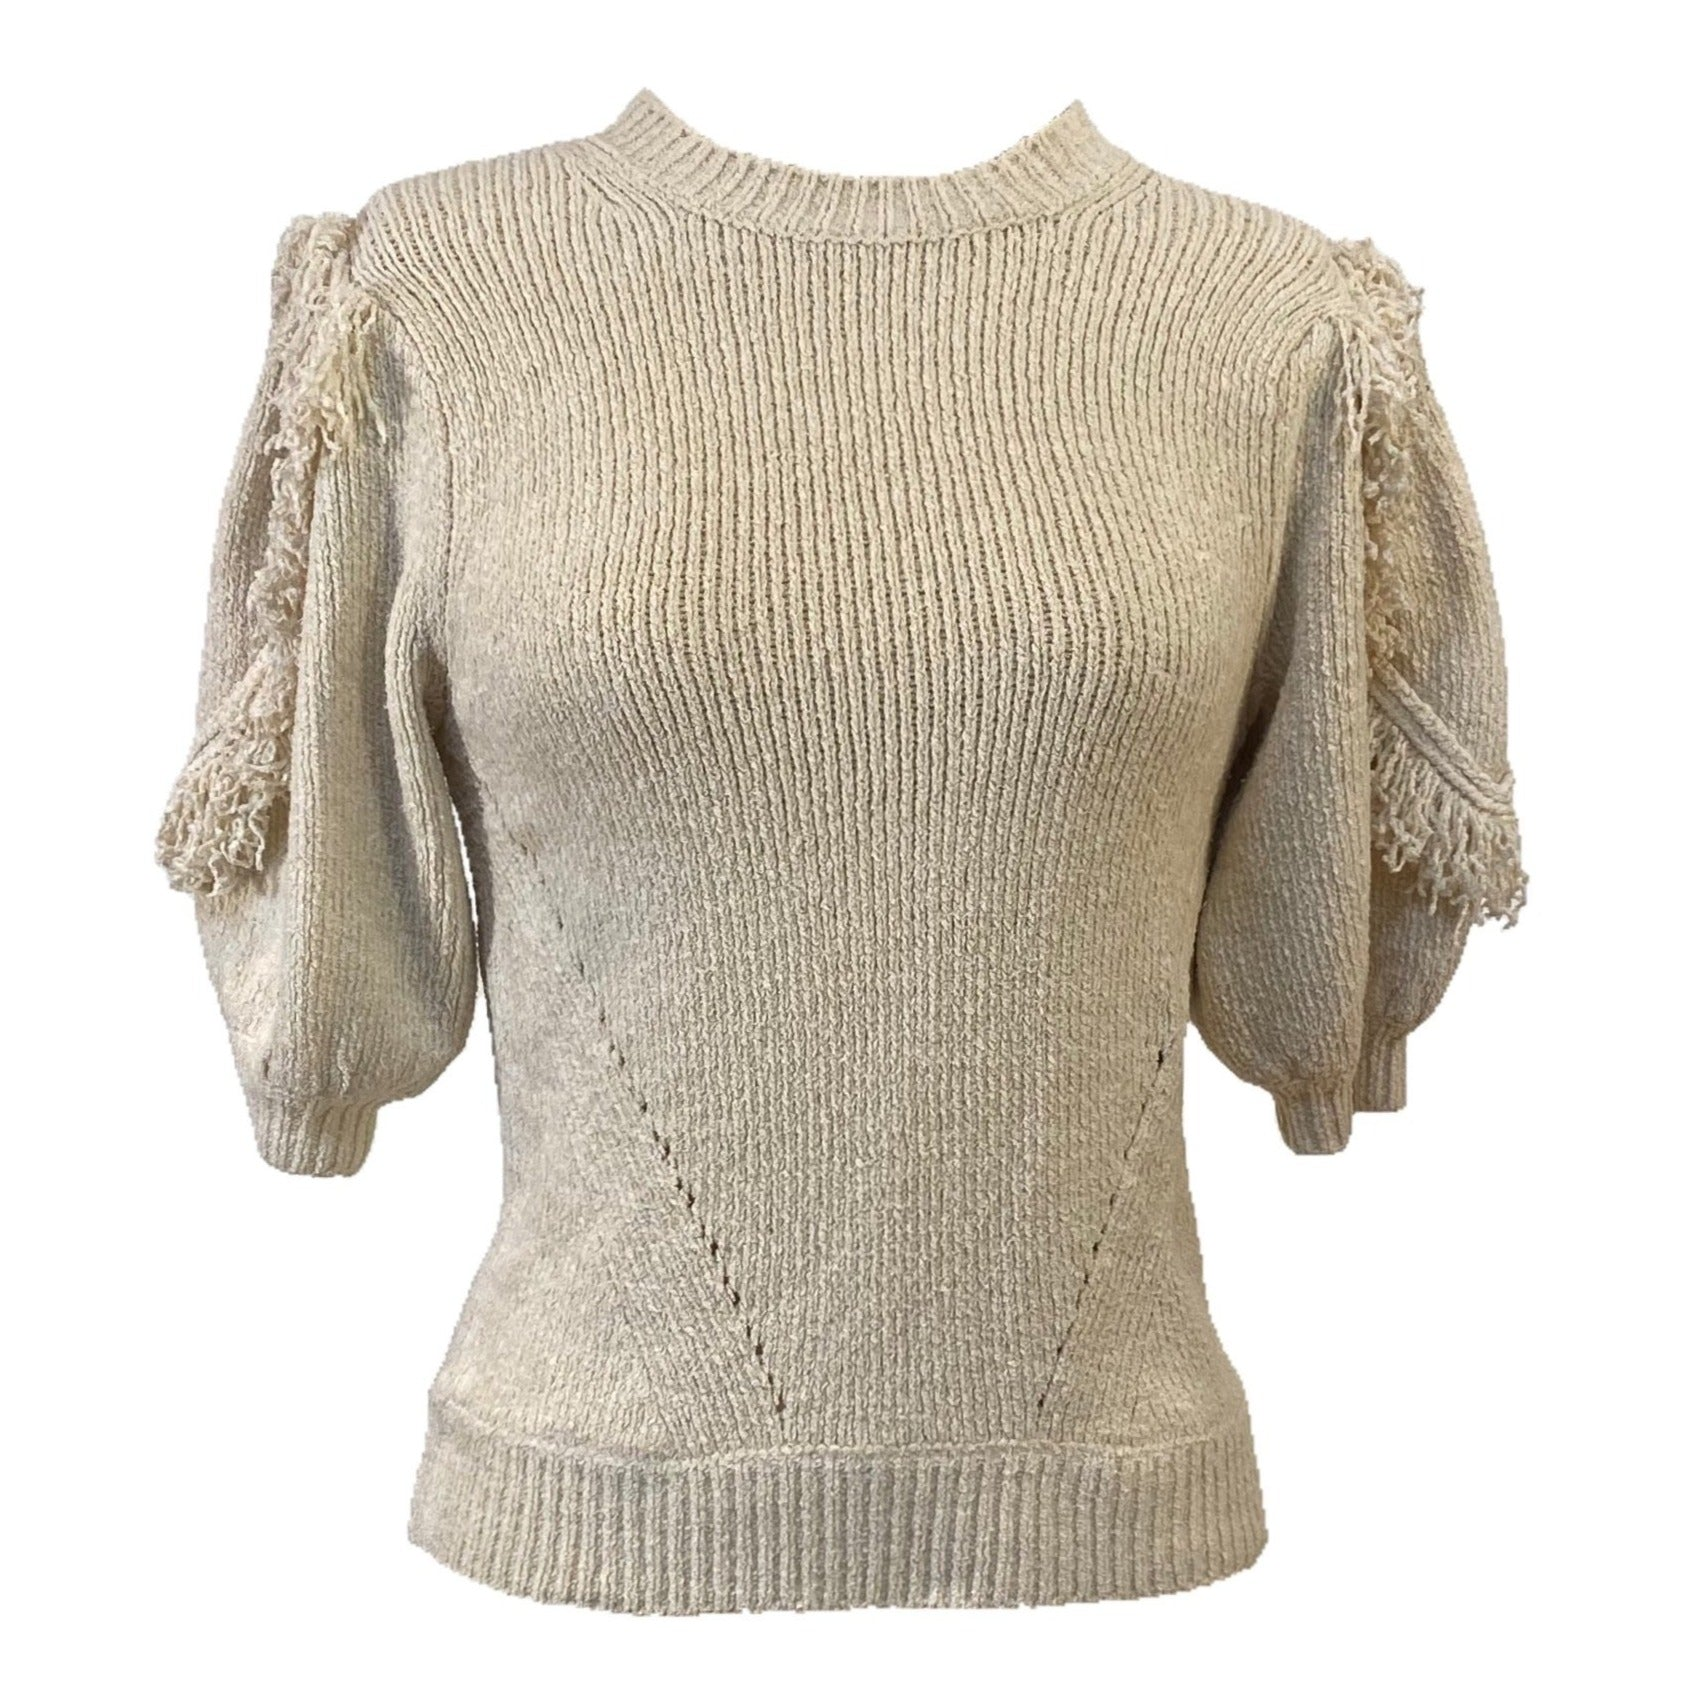 Noor Sweater Top in Cream